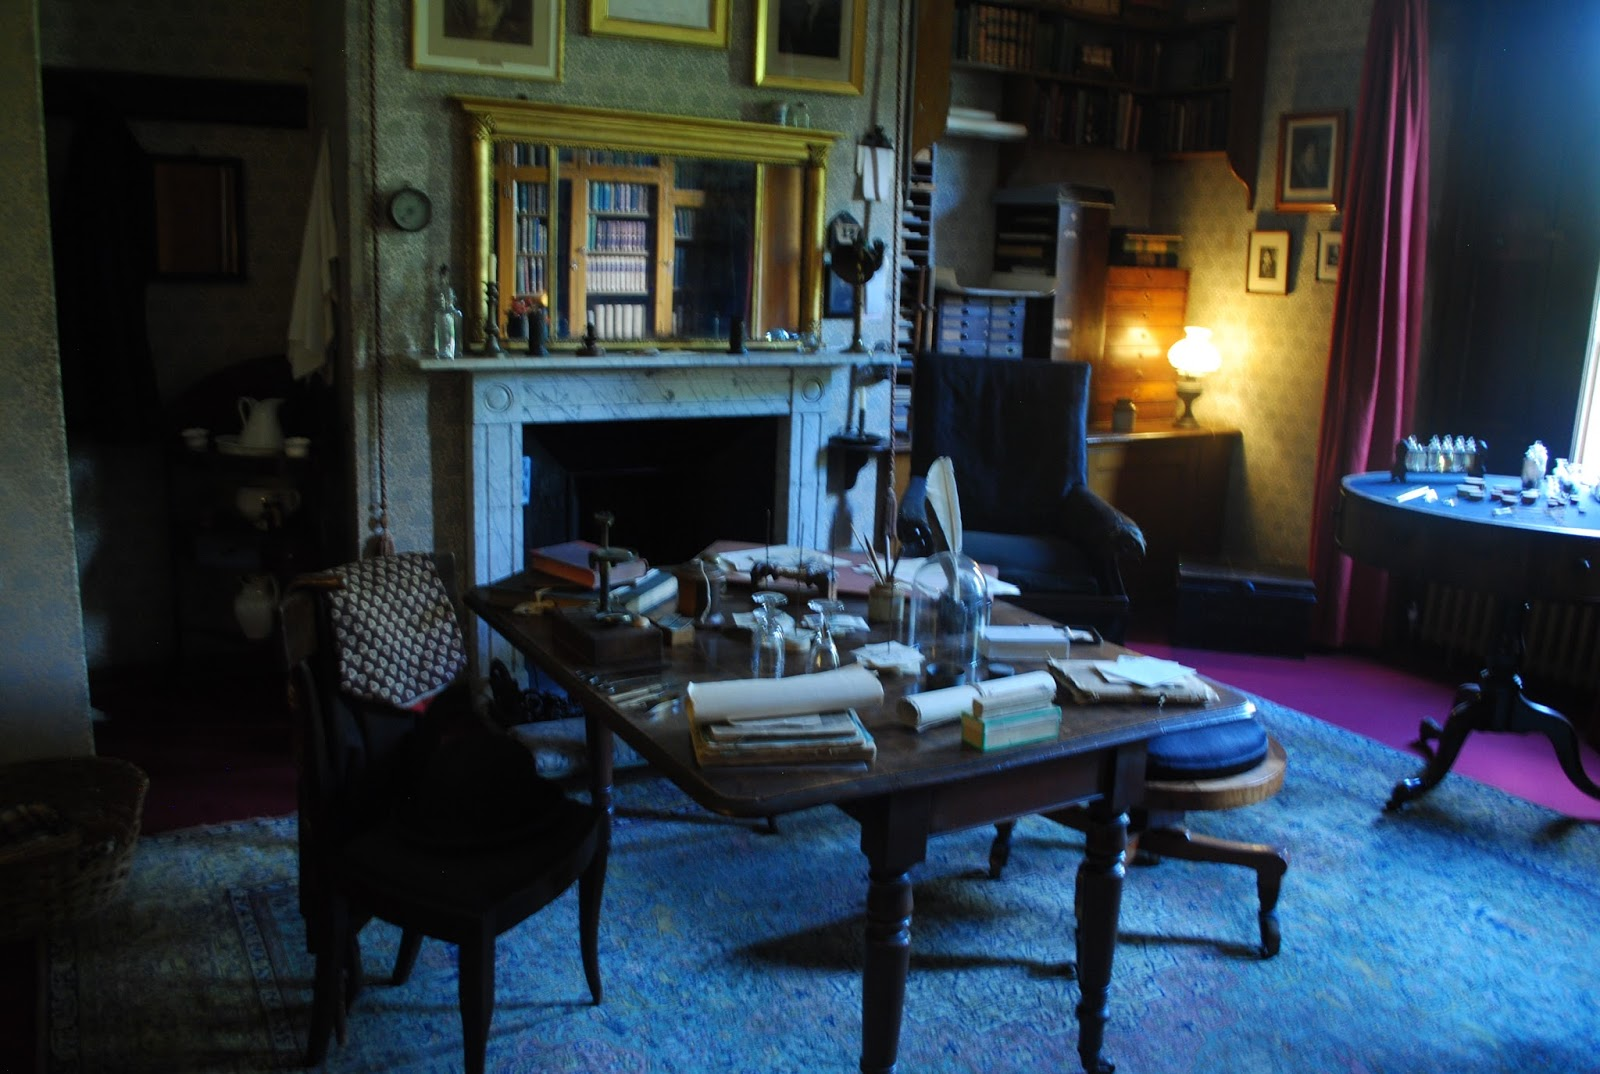 Charles Darwin's study room in Downe House